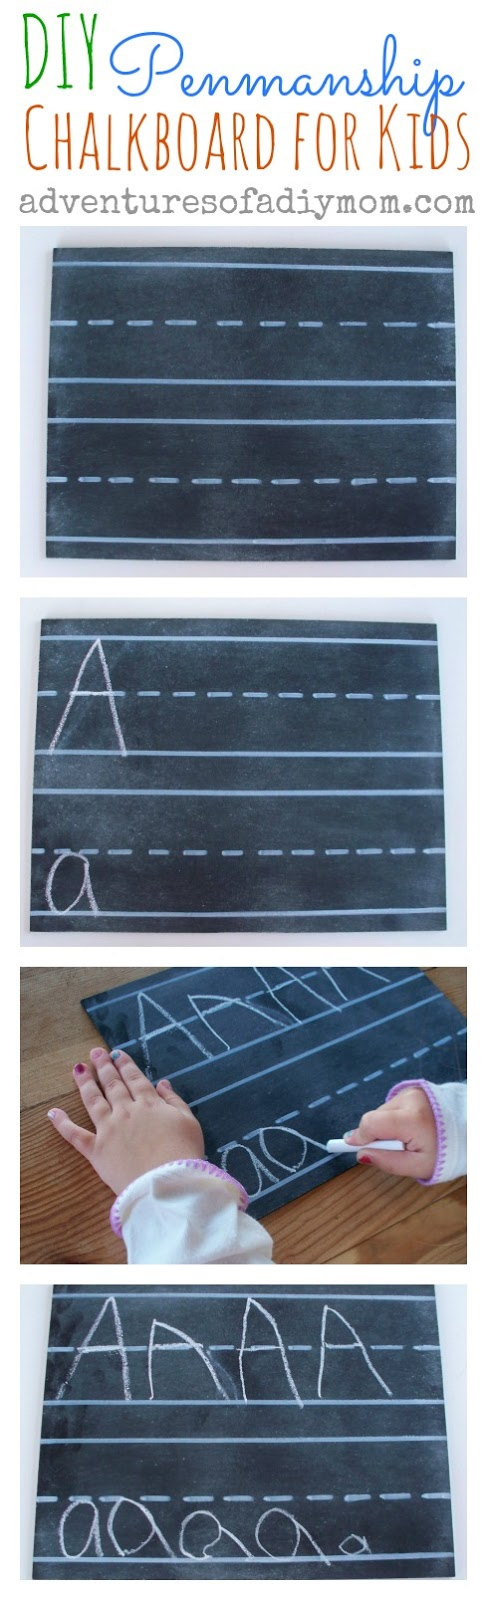 DIY Penmanship Chalkboard for Kids